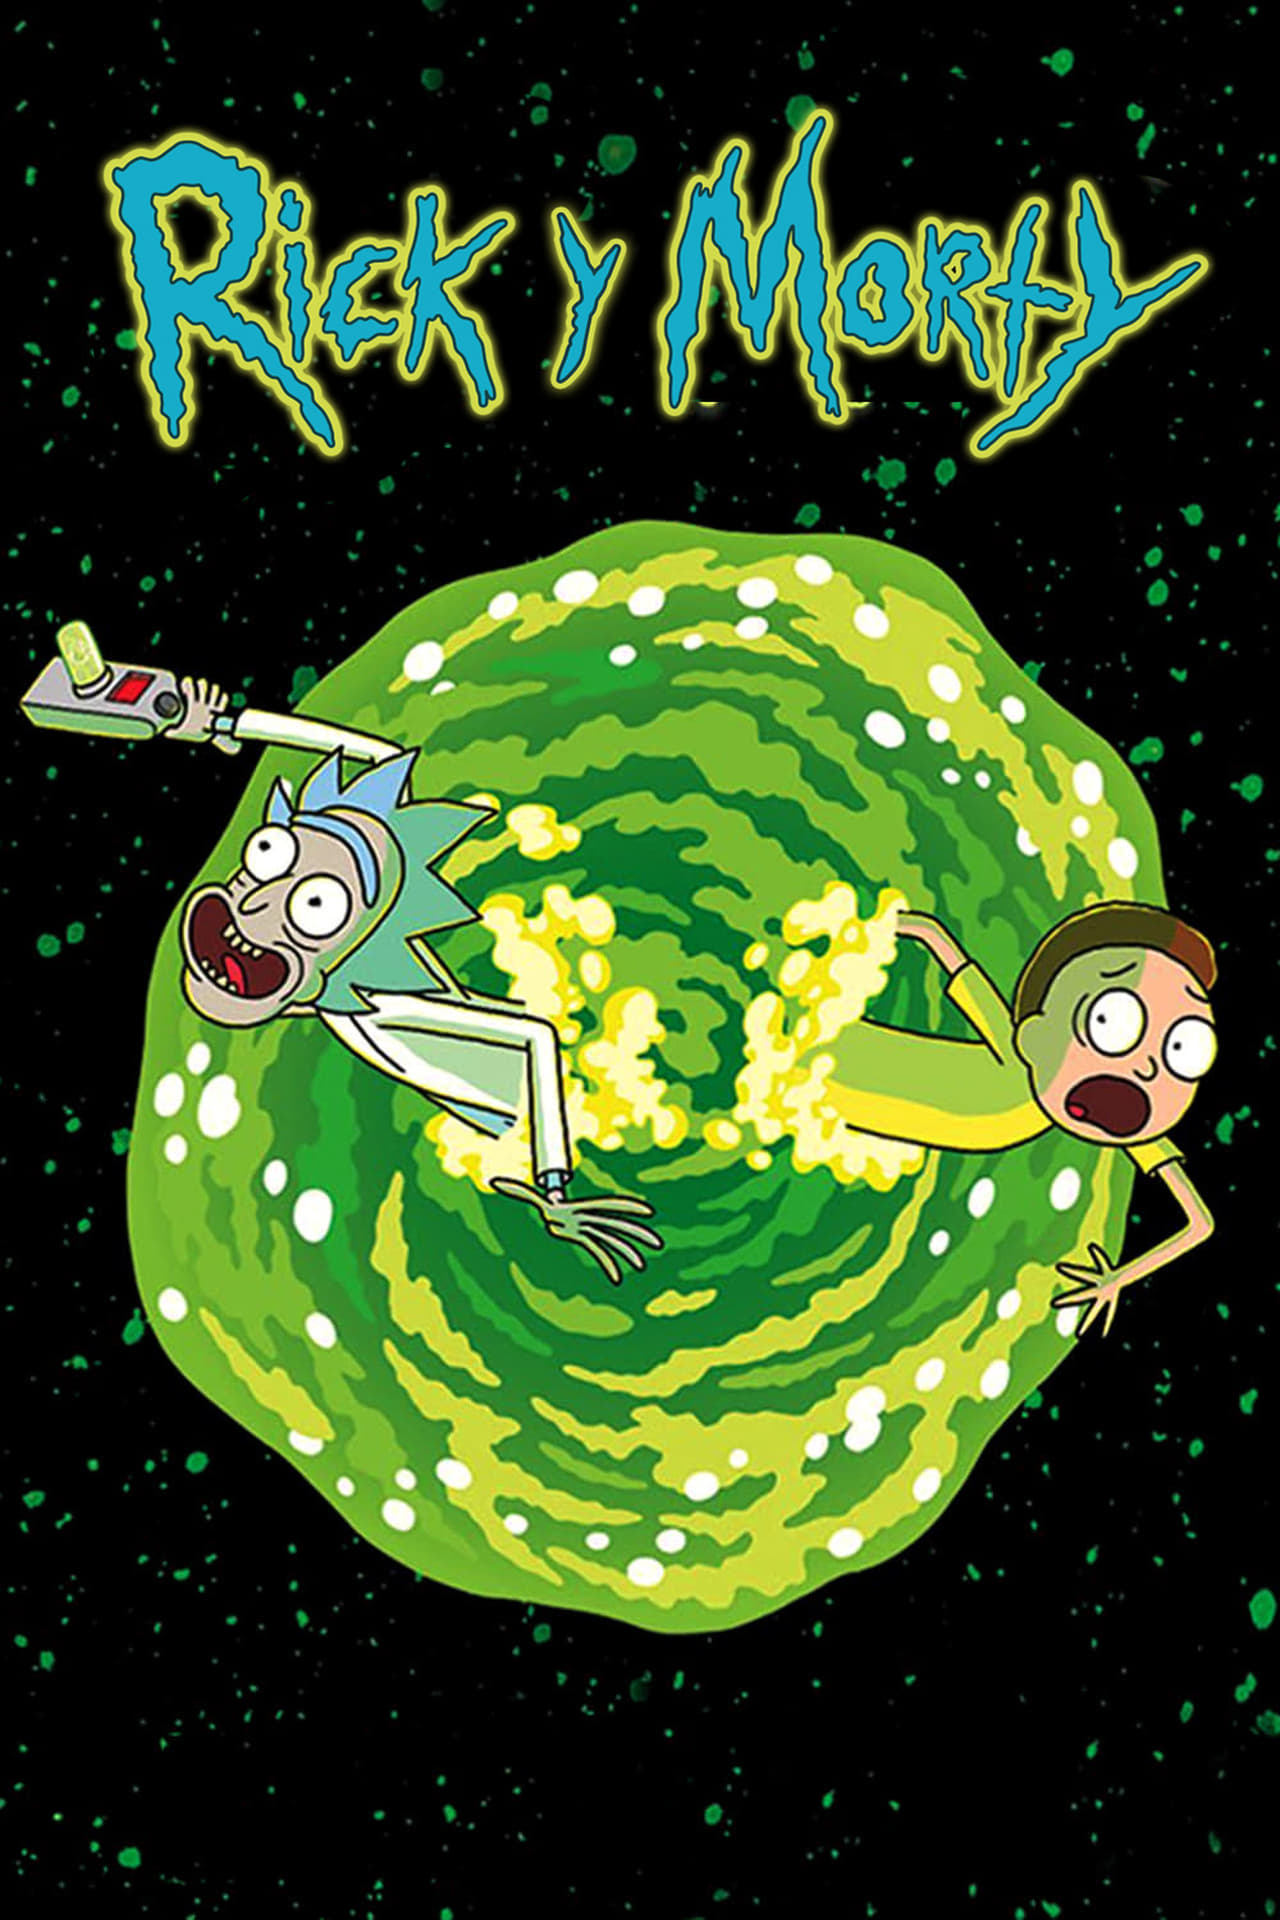 Rick y Morty - Season 2 Episode 10 : De squanch en squanch